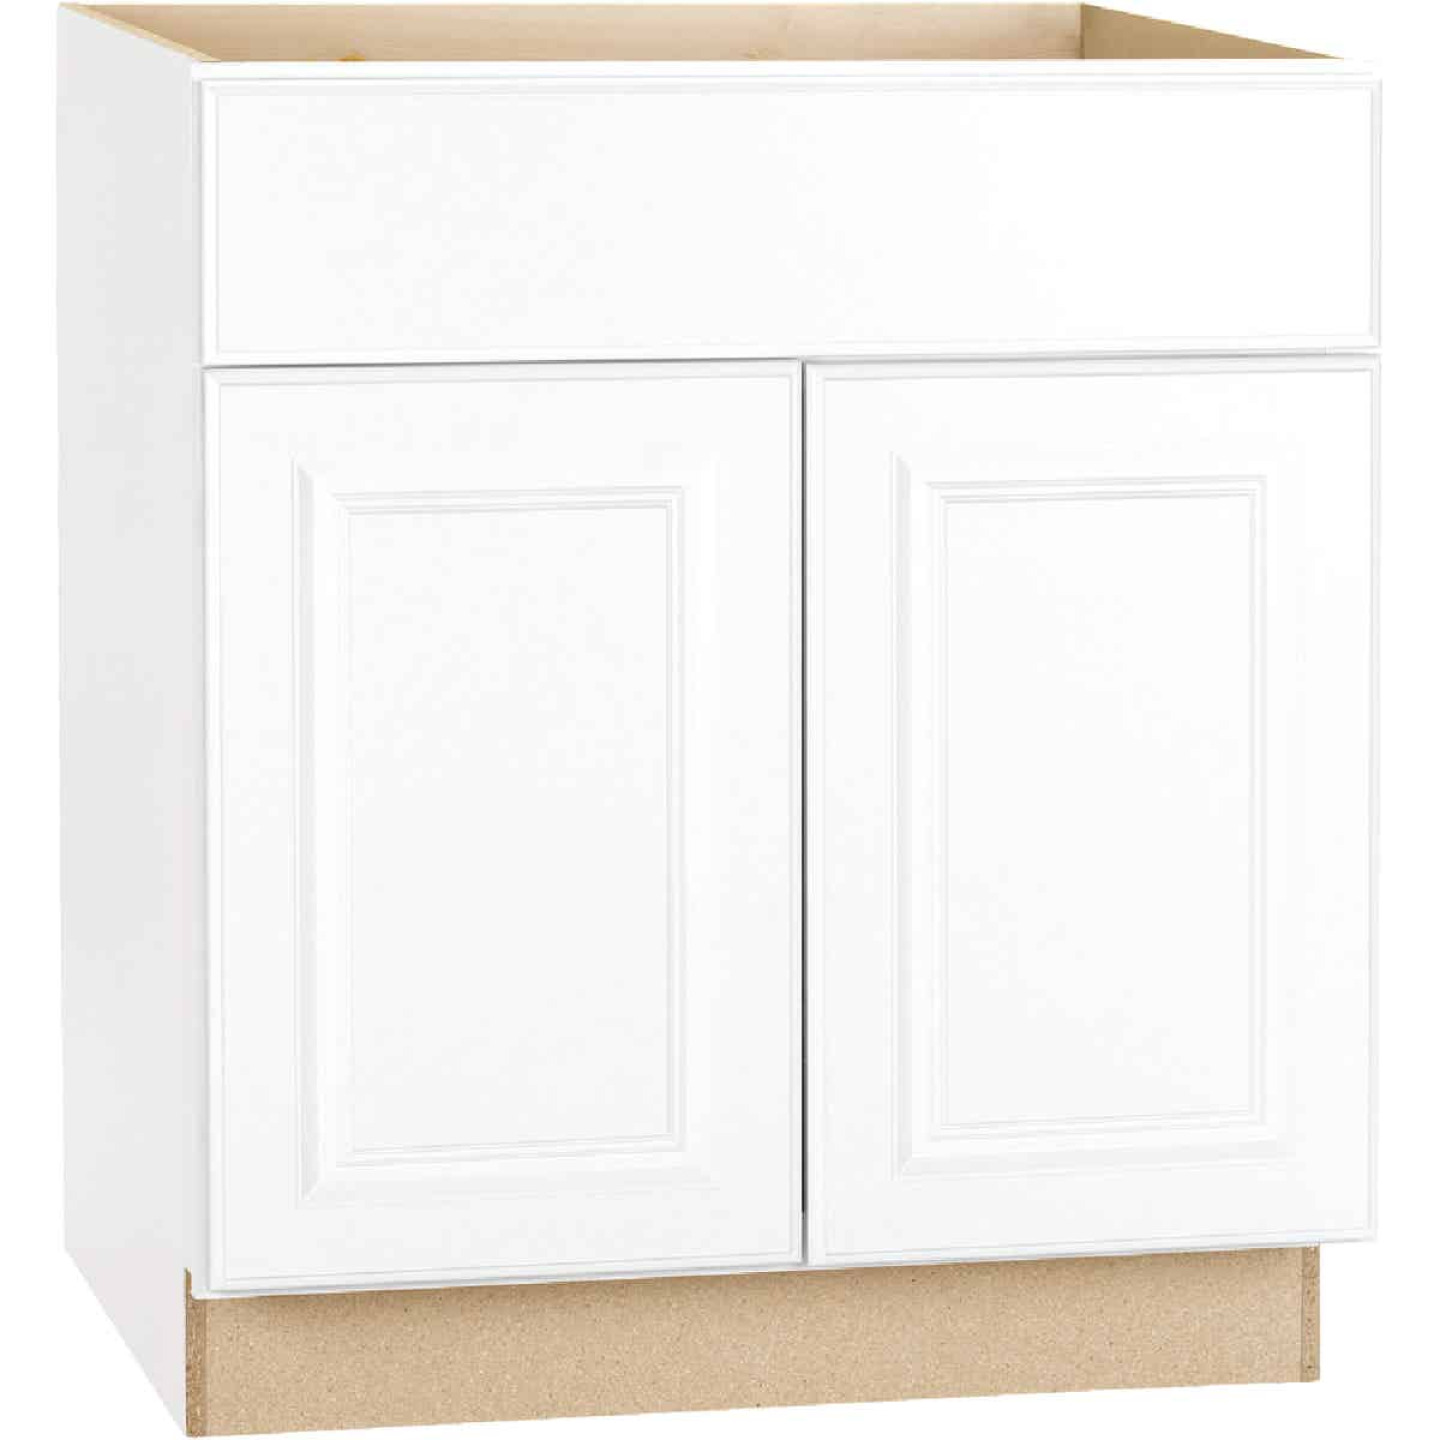 Continental Cabinets Hamilton 30 In. W x 34-1/2 In. H x 24 In. D Satin White Maple Sink/Cooktop Base Kitchen Cabinet Image 3